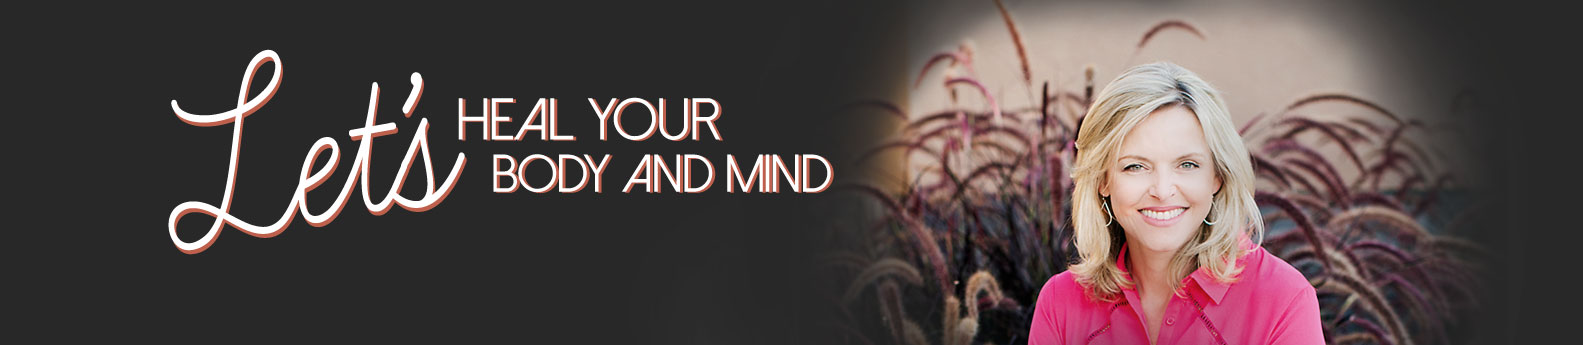 let's heal your body and mind header